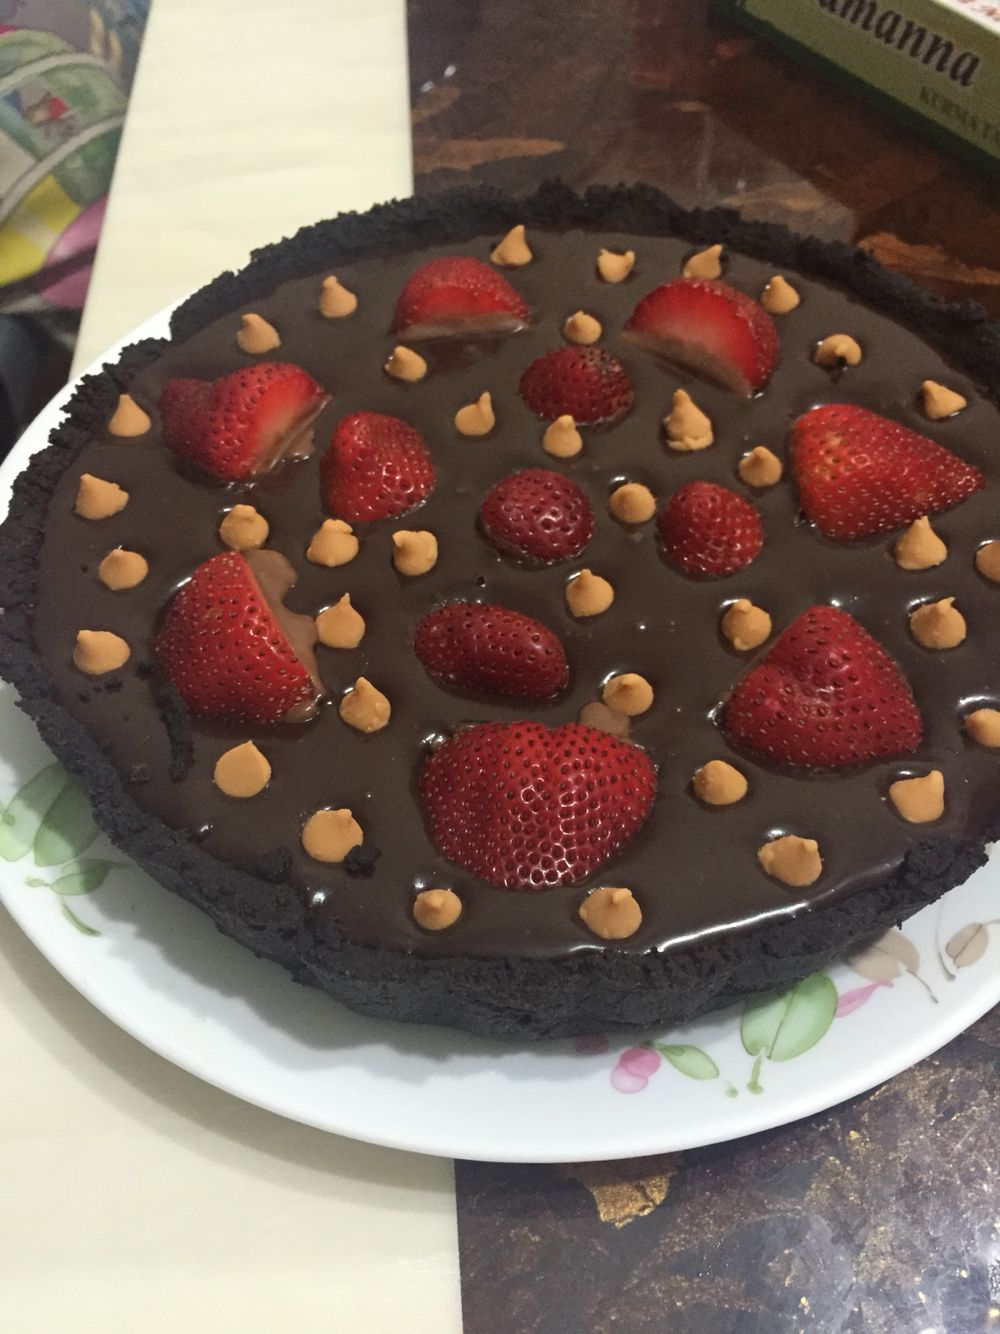 Easy no-bake chocolate strawberry tart